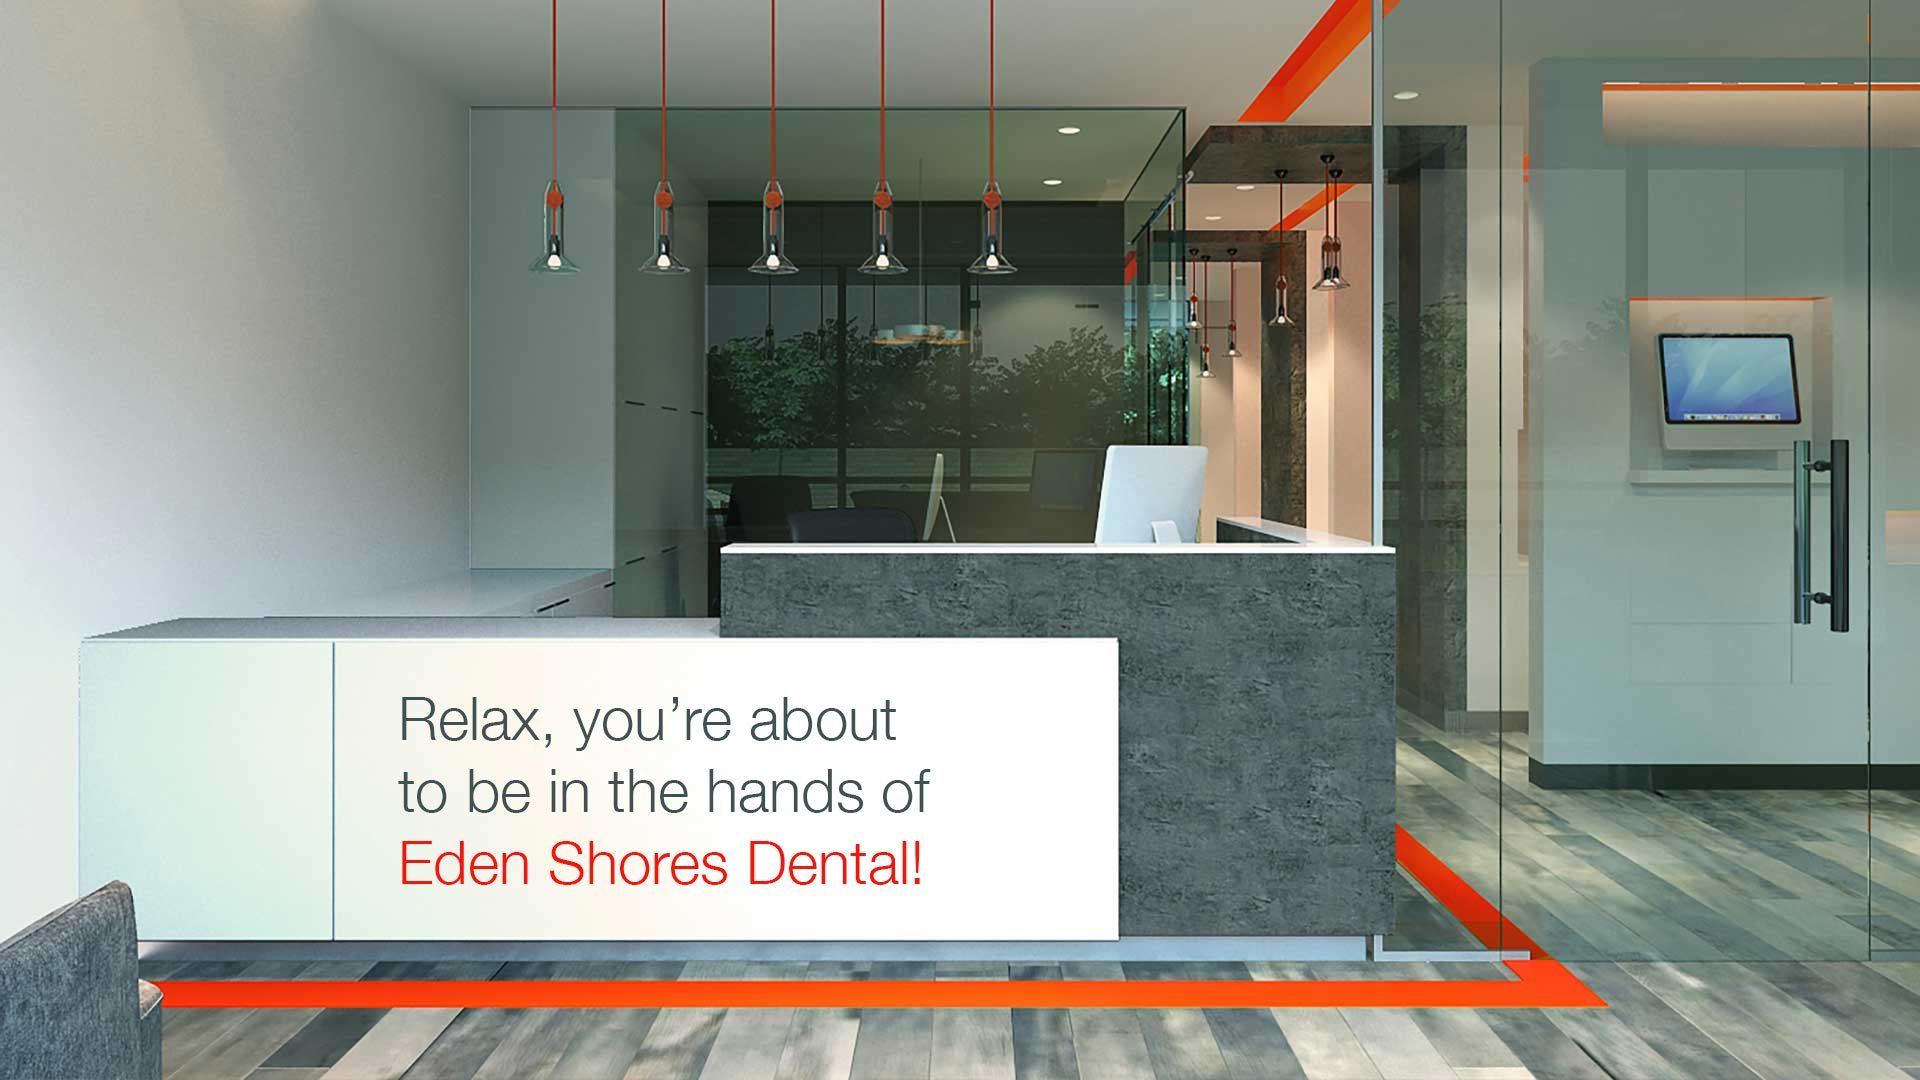 Relax, you're about to be in the hands of Eden Shores Dental